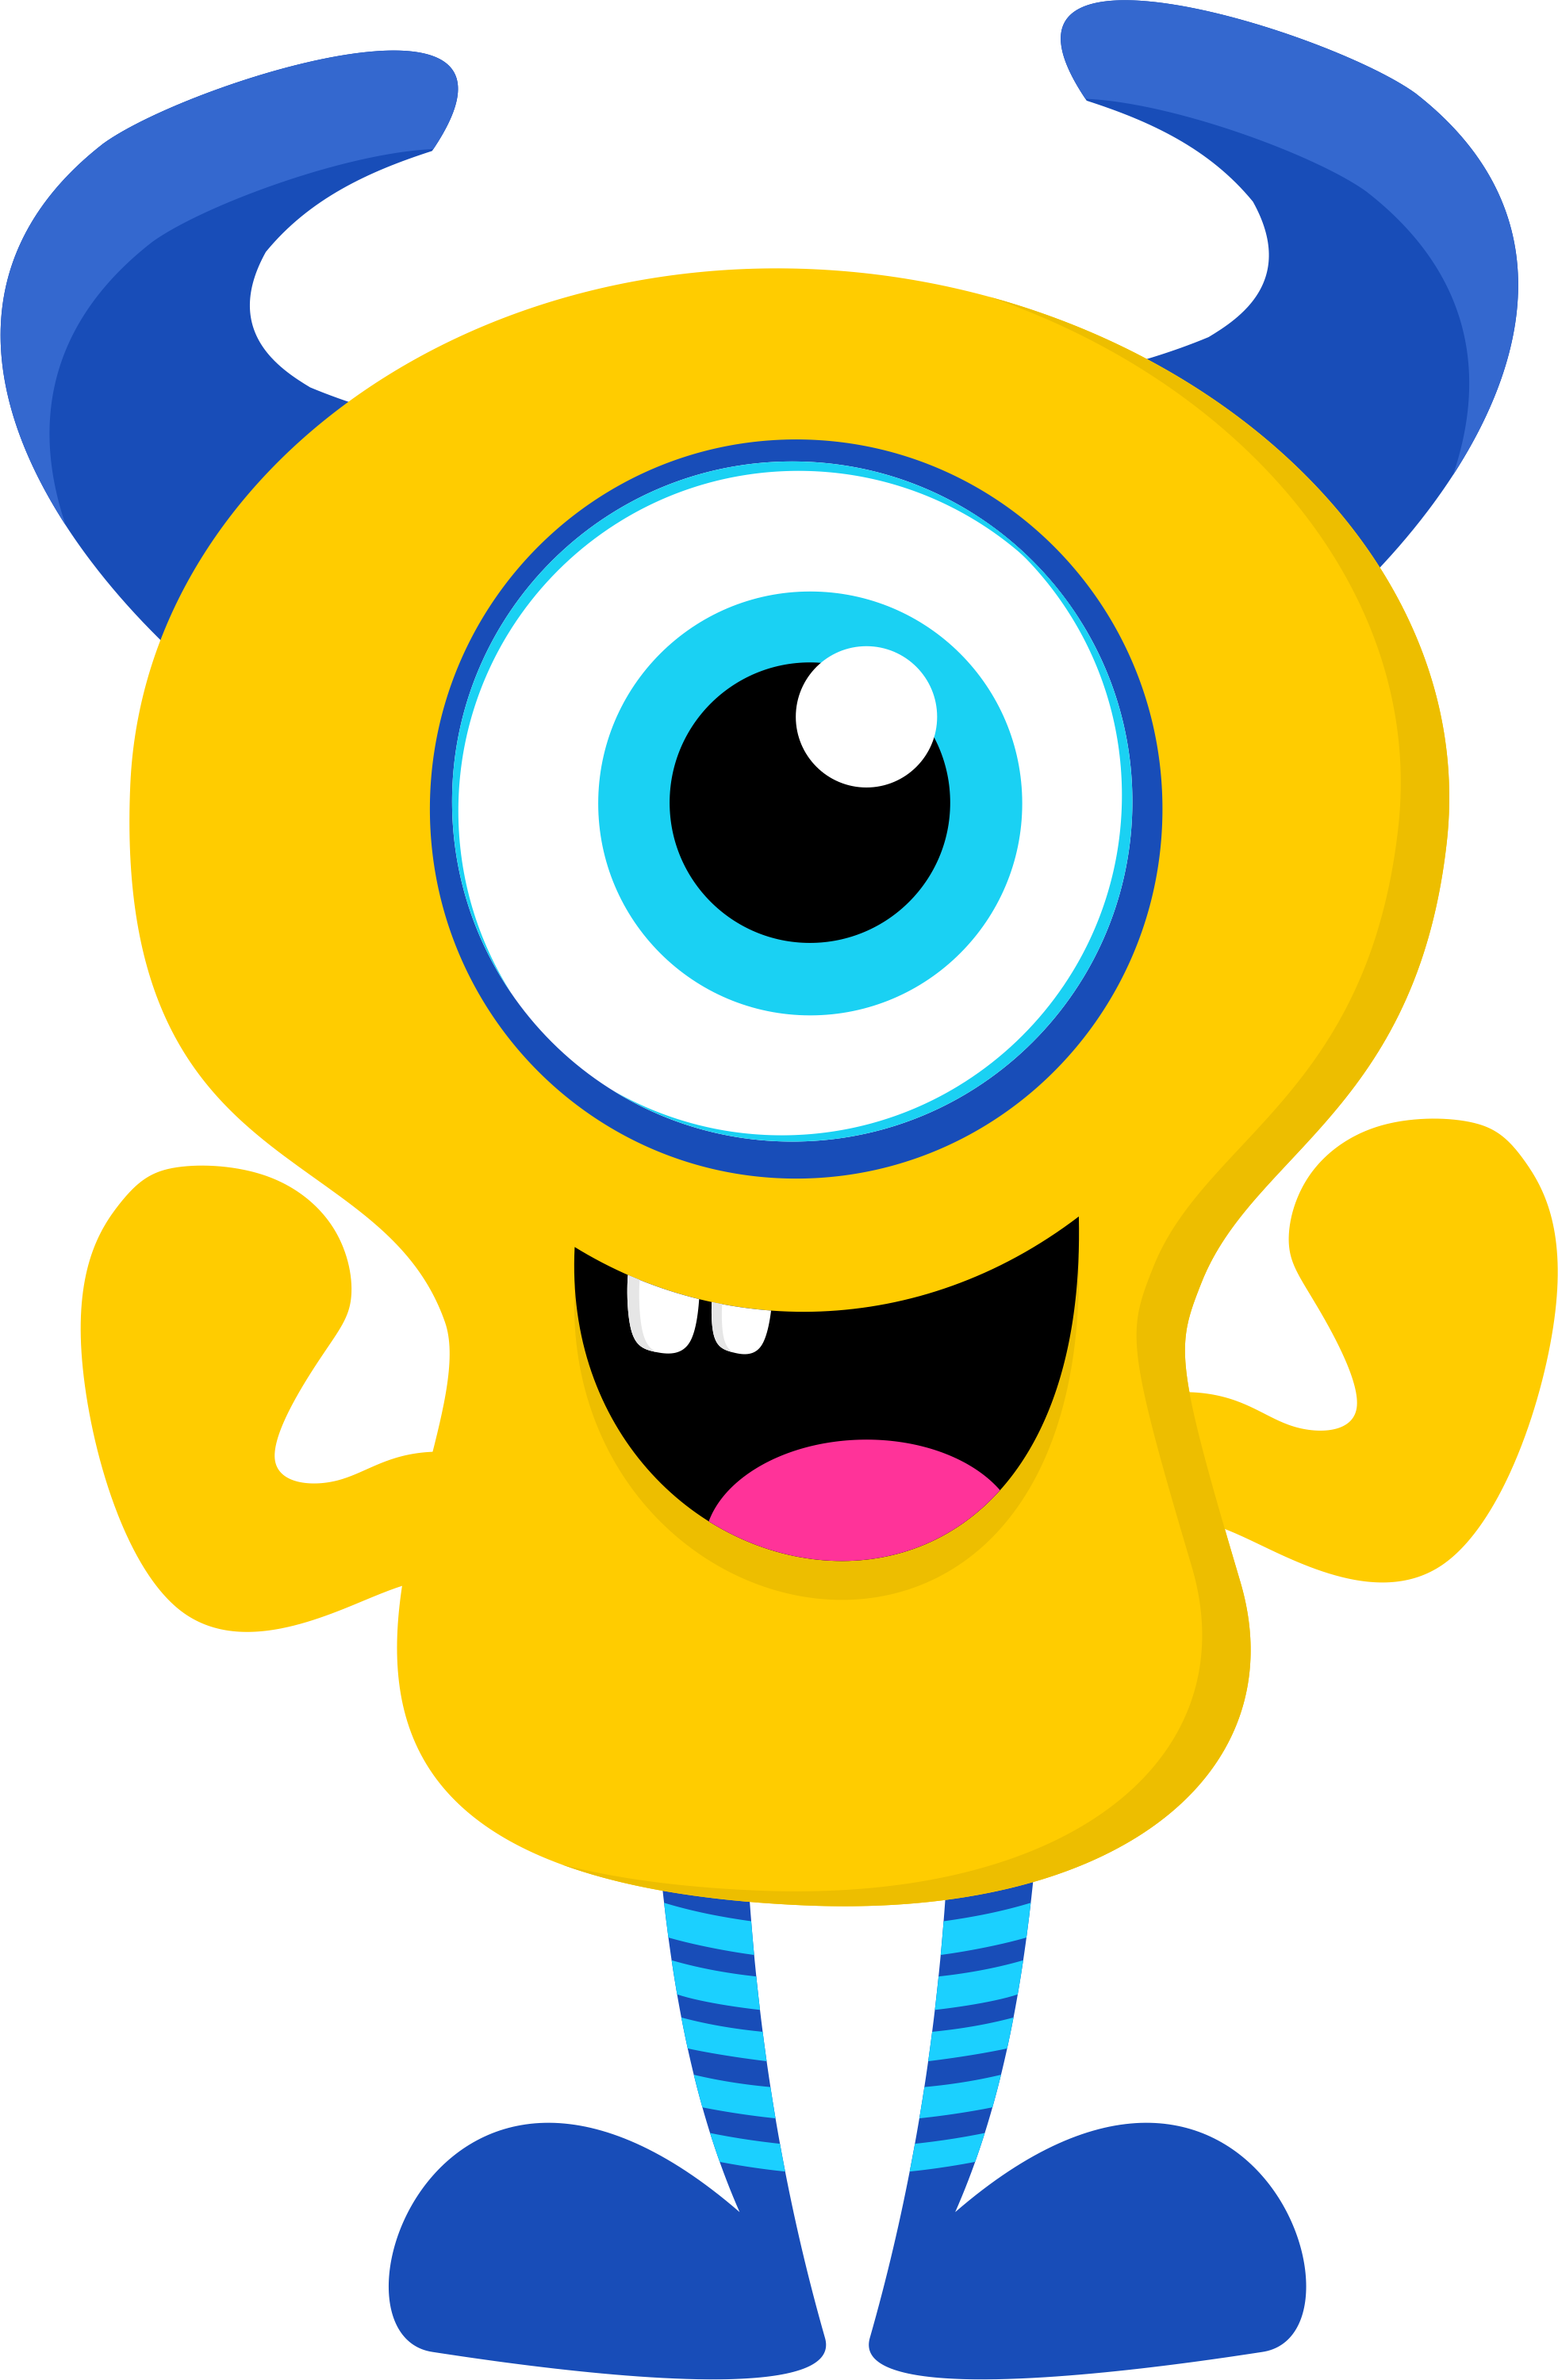 svg free stock Ch b de minus. Creatures clipart yellow monster.